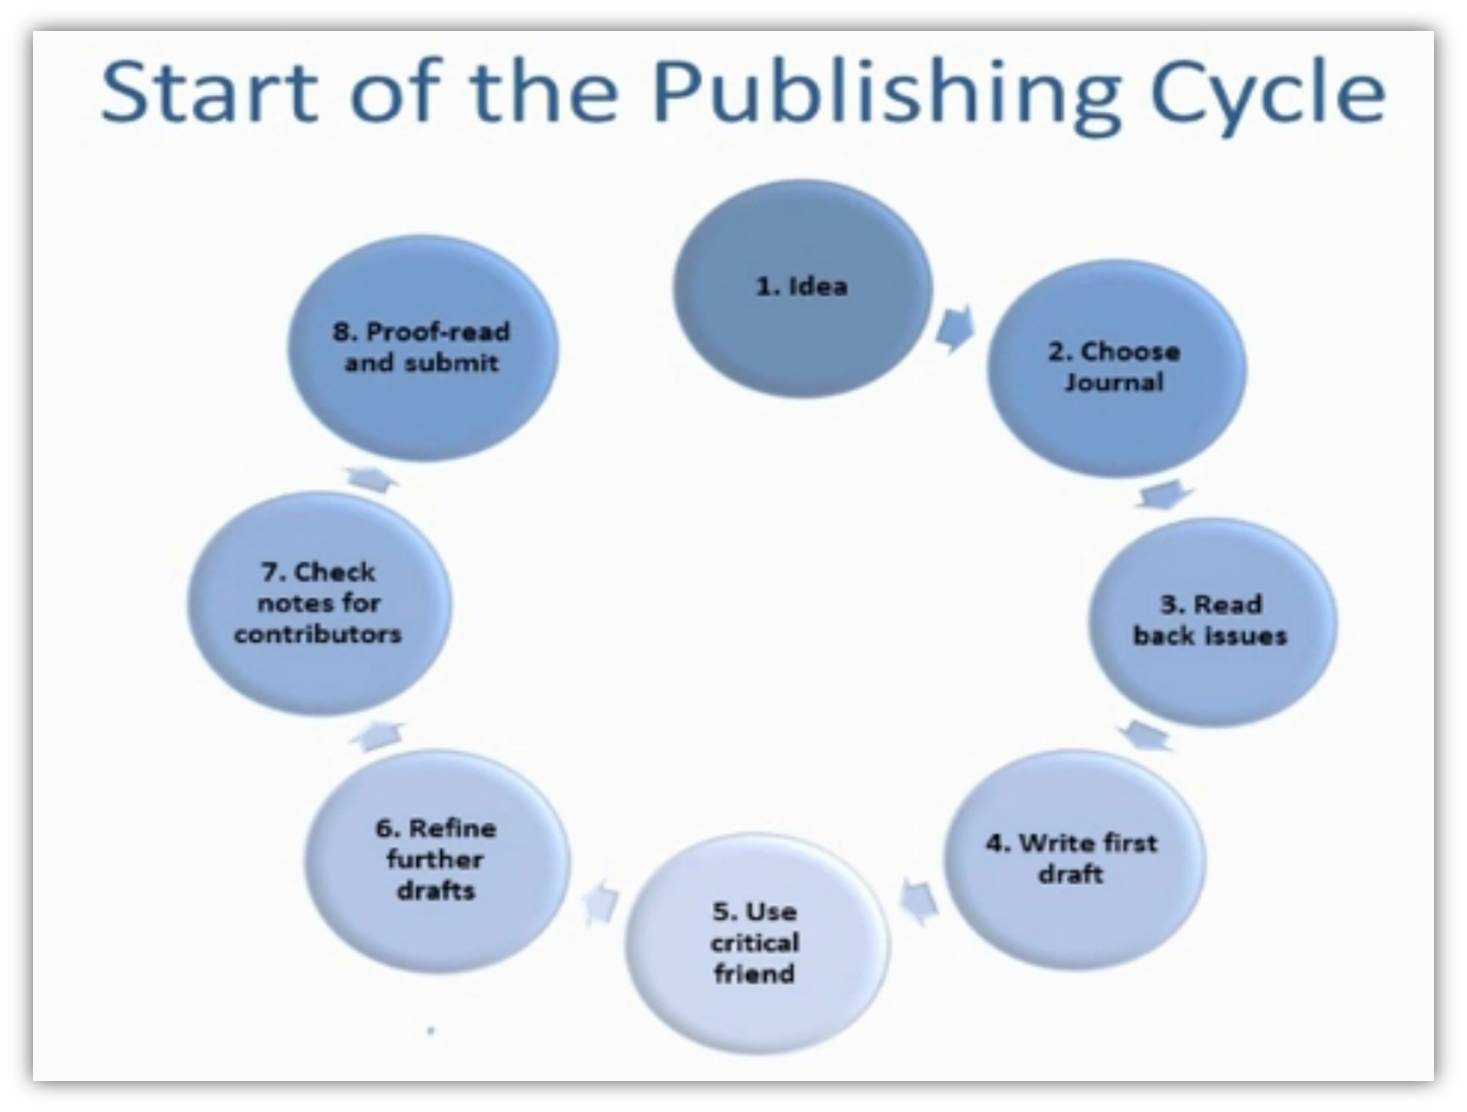 001 Research Paper Publishing Cycle How To Have Stirring A Published Get An Academic India Full